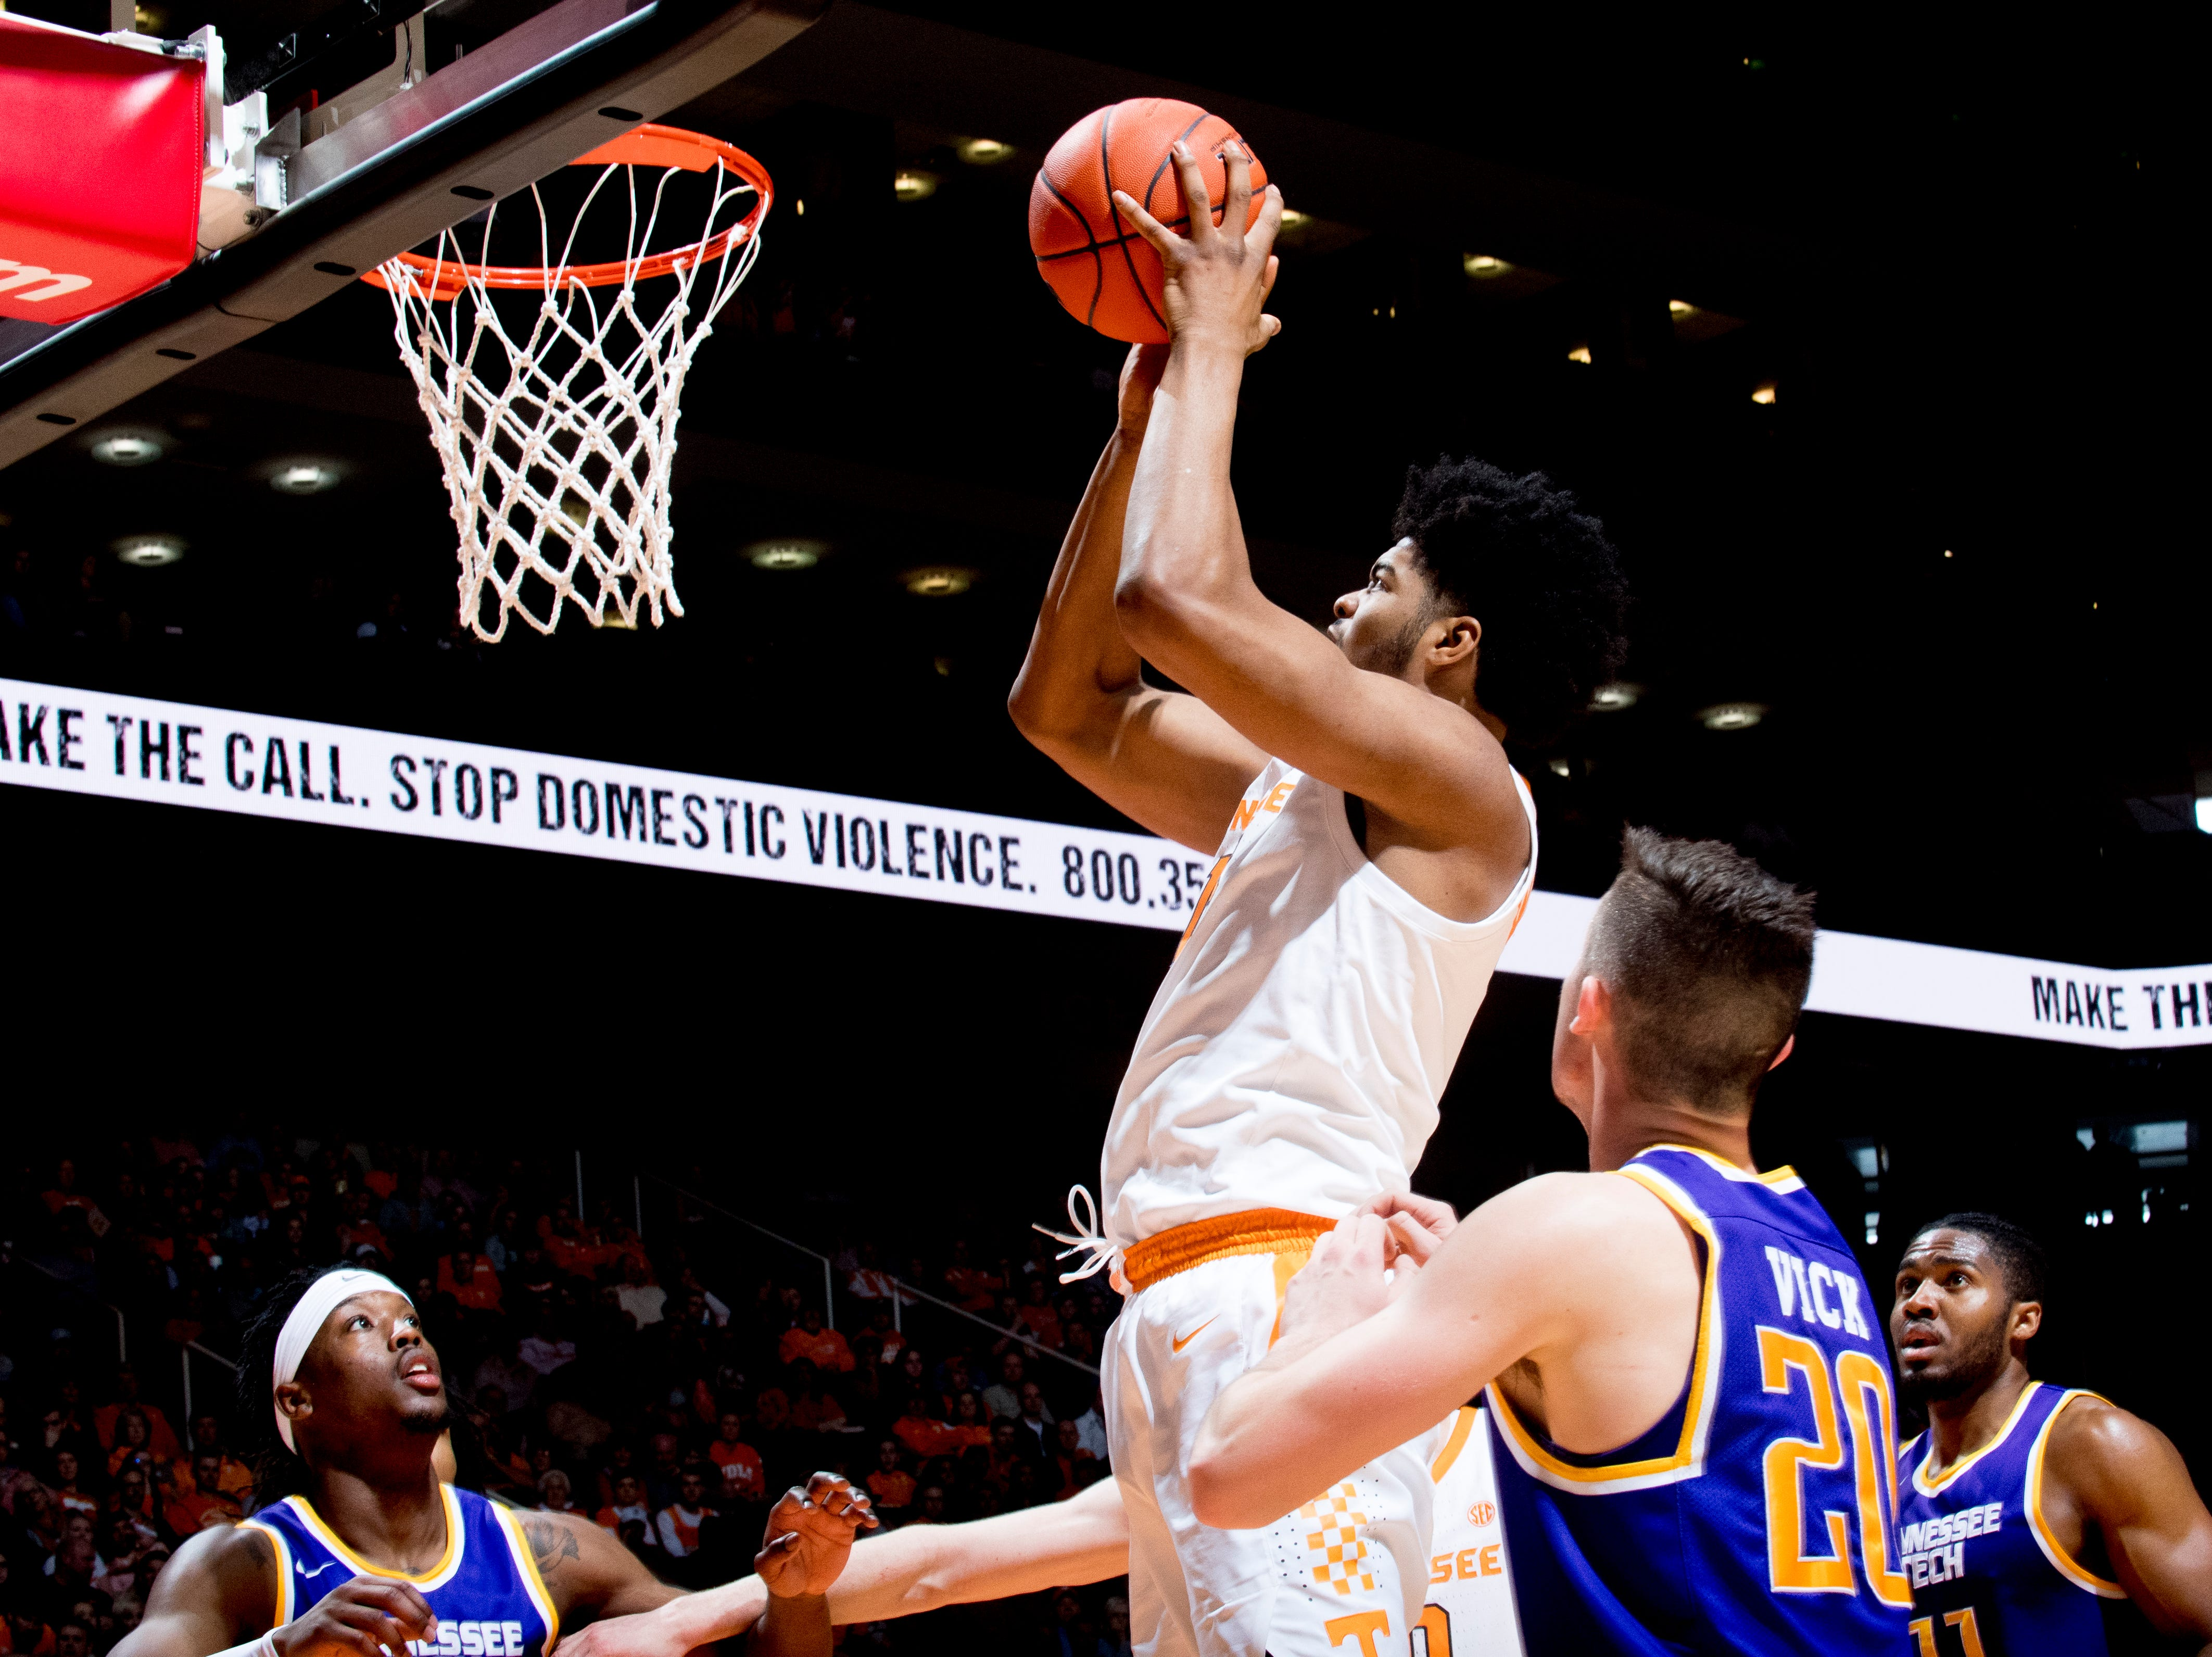 Tennessee forward Derrick Walker (15) shoots the ball during a game between Tennessee and Tennessee Tech at Thompson-Boling Arena in Knoxville, Tennessee on Saturday, December 29, 2018.